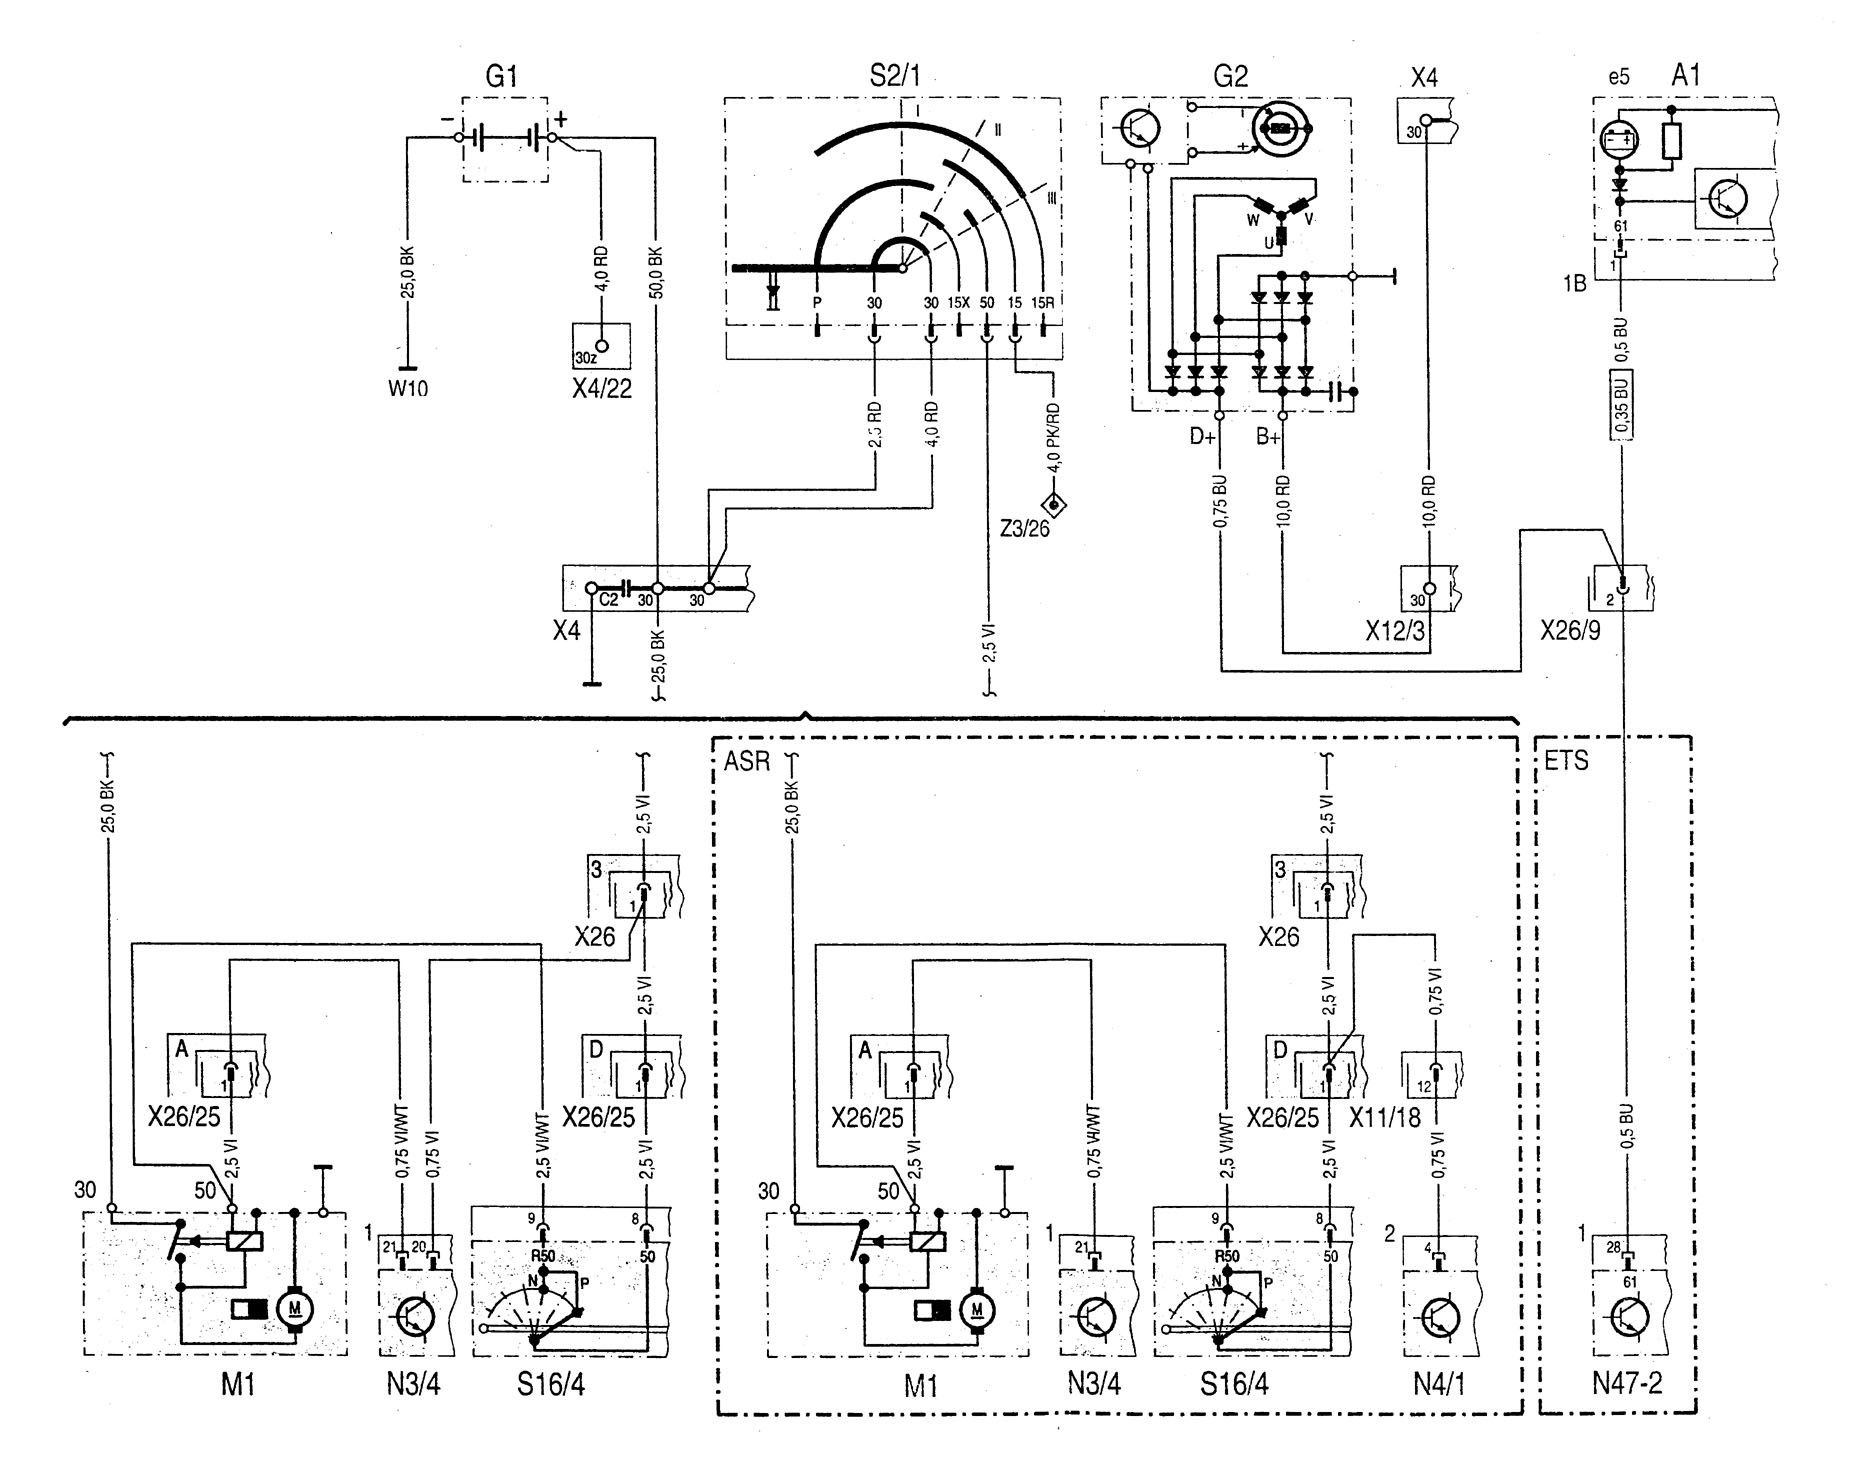 Mercedes-benz C220  1994 - 1996  - Wiring Diagrams - Starting